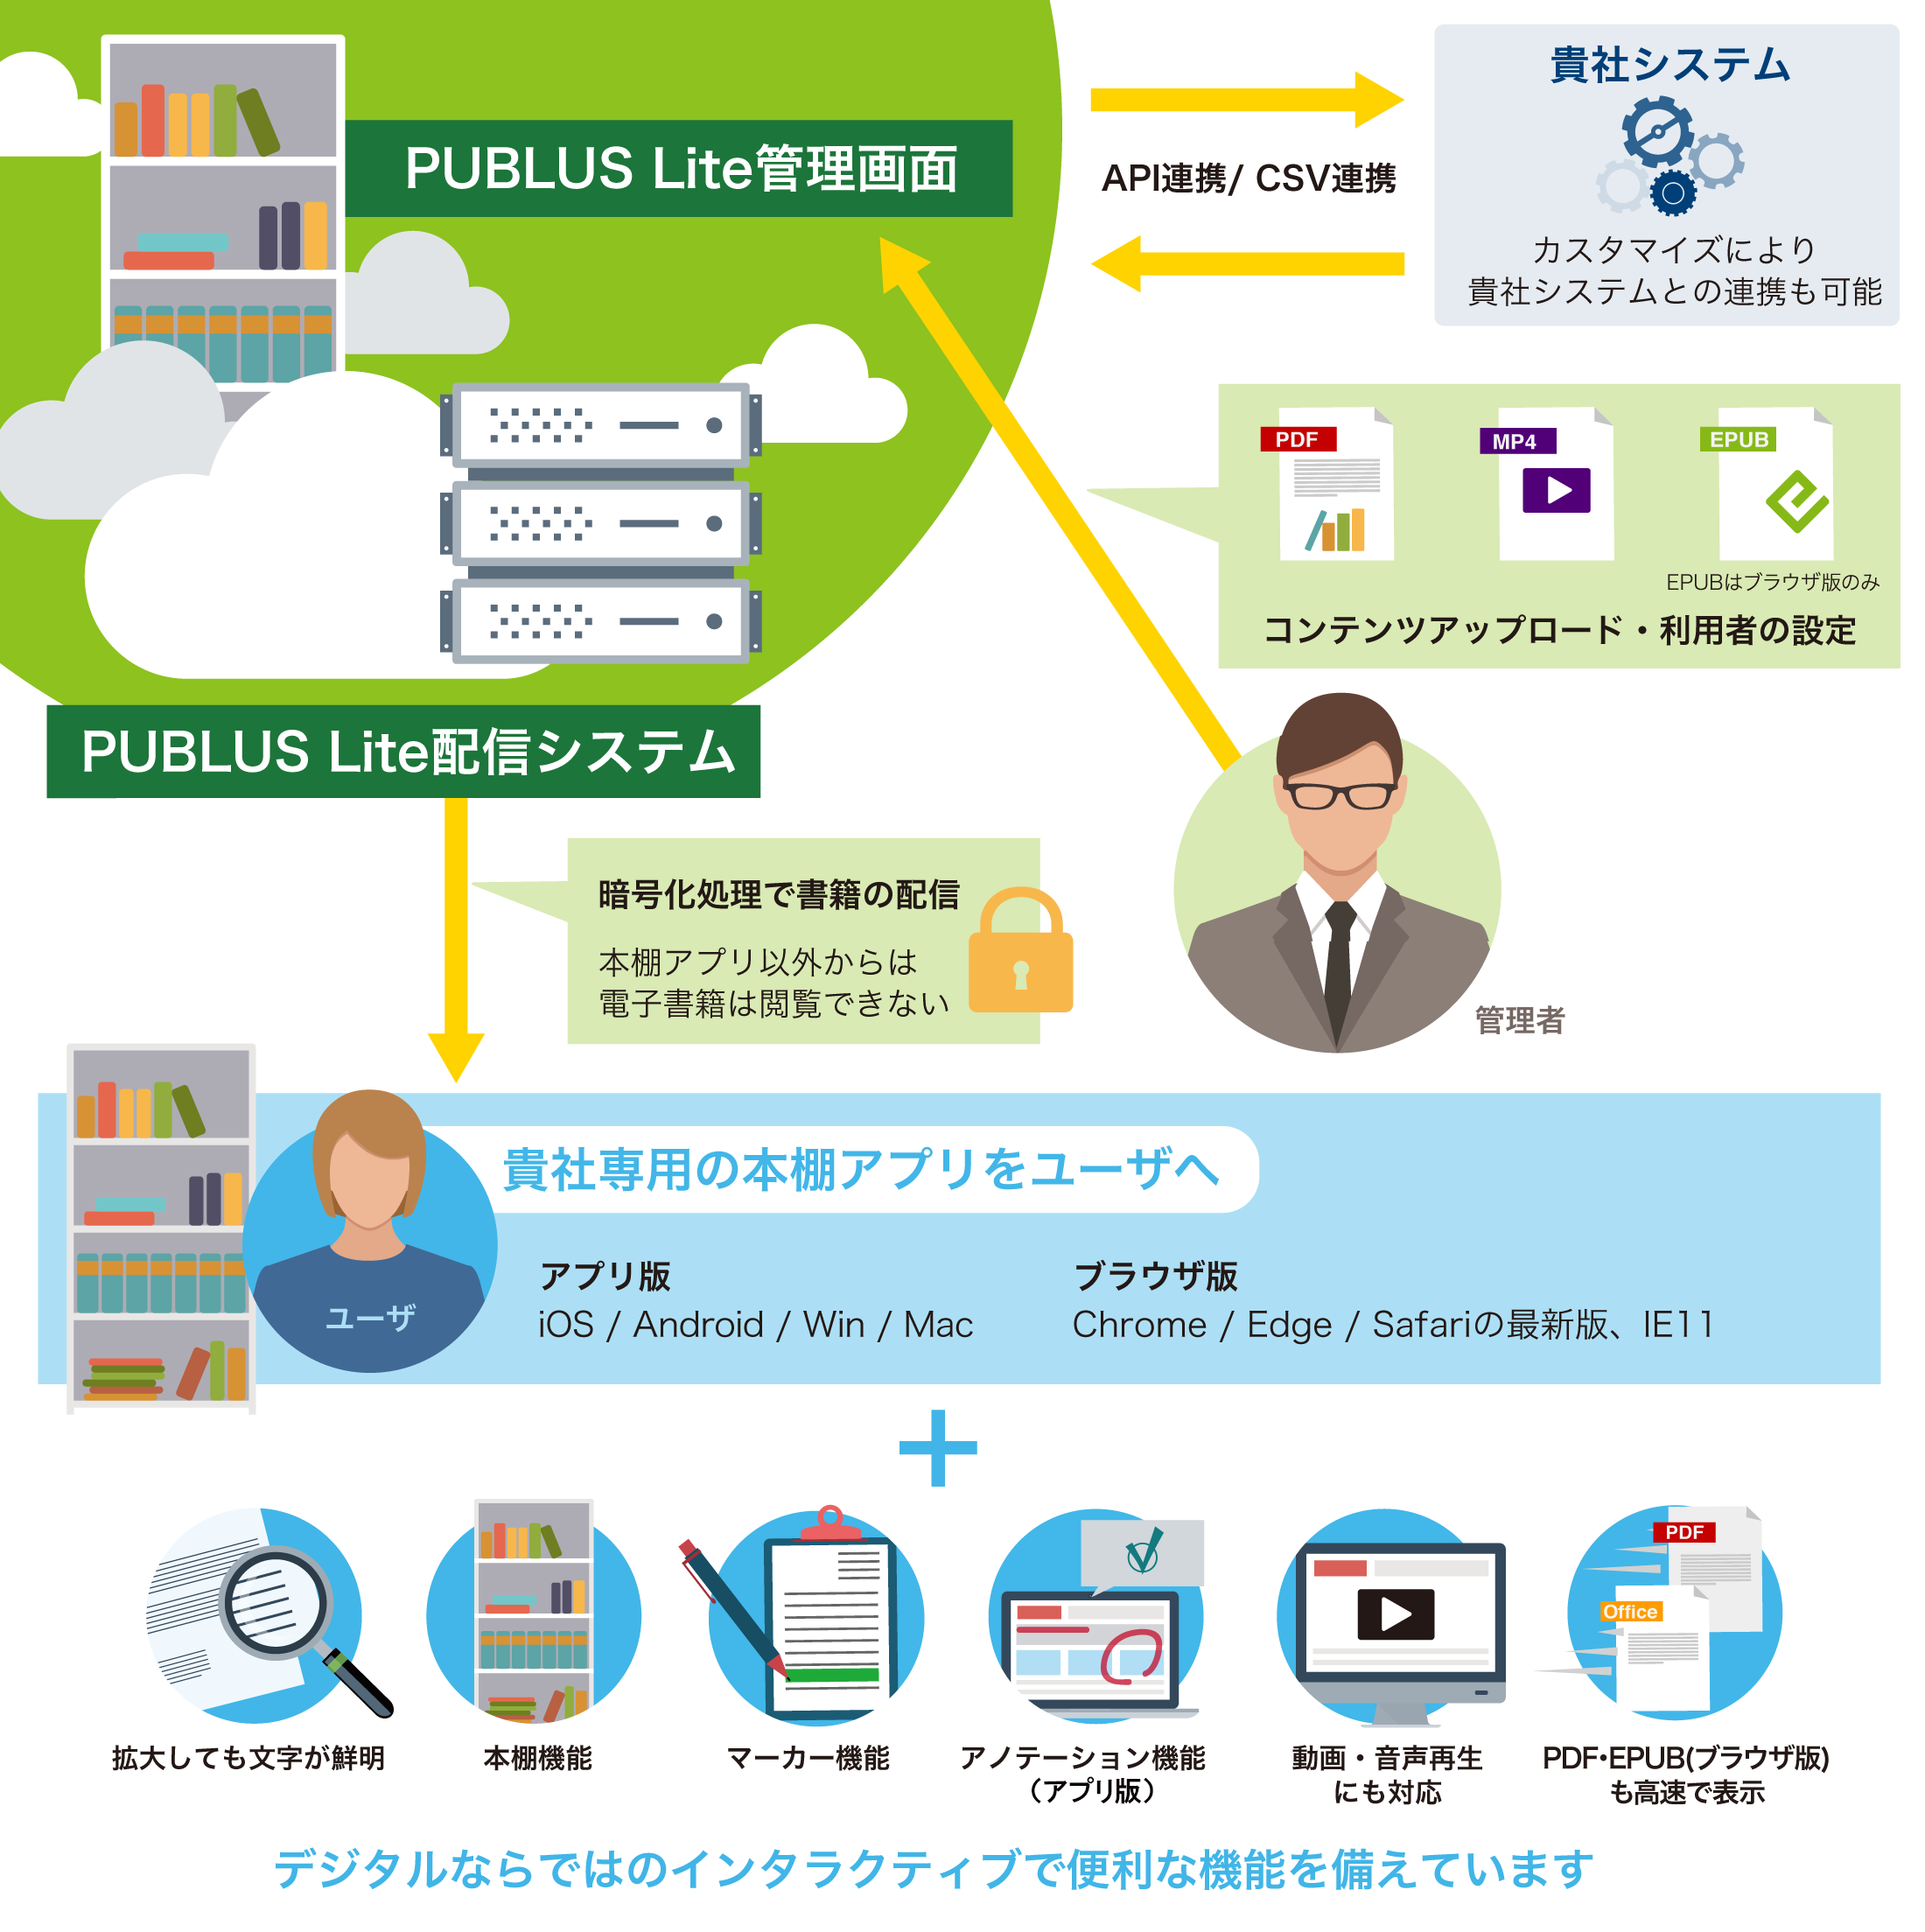 PUBLUS Lite for Browserの機能